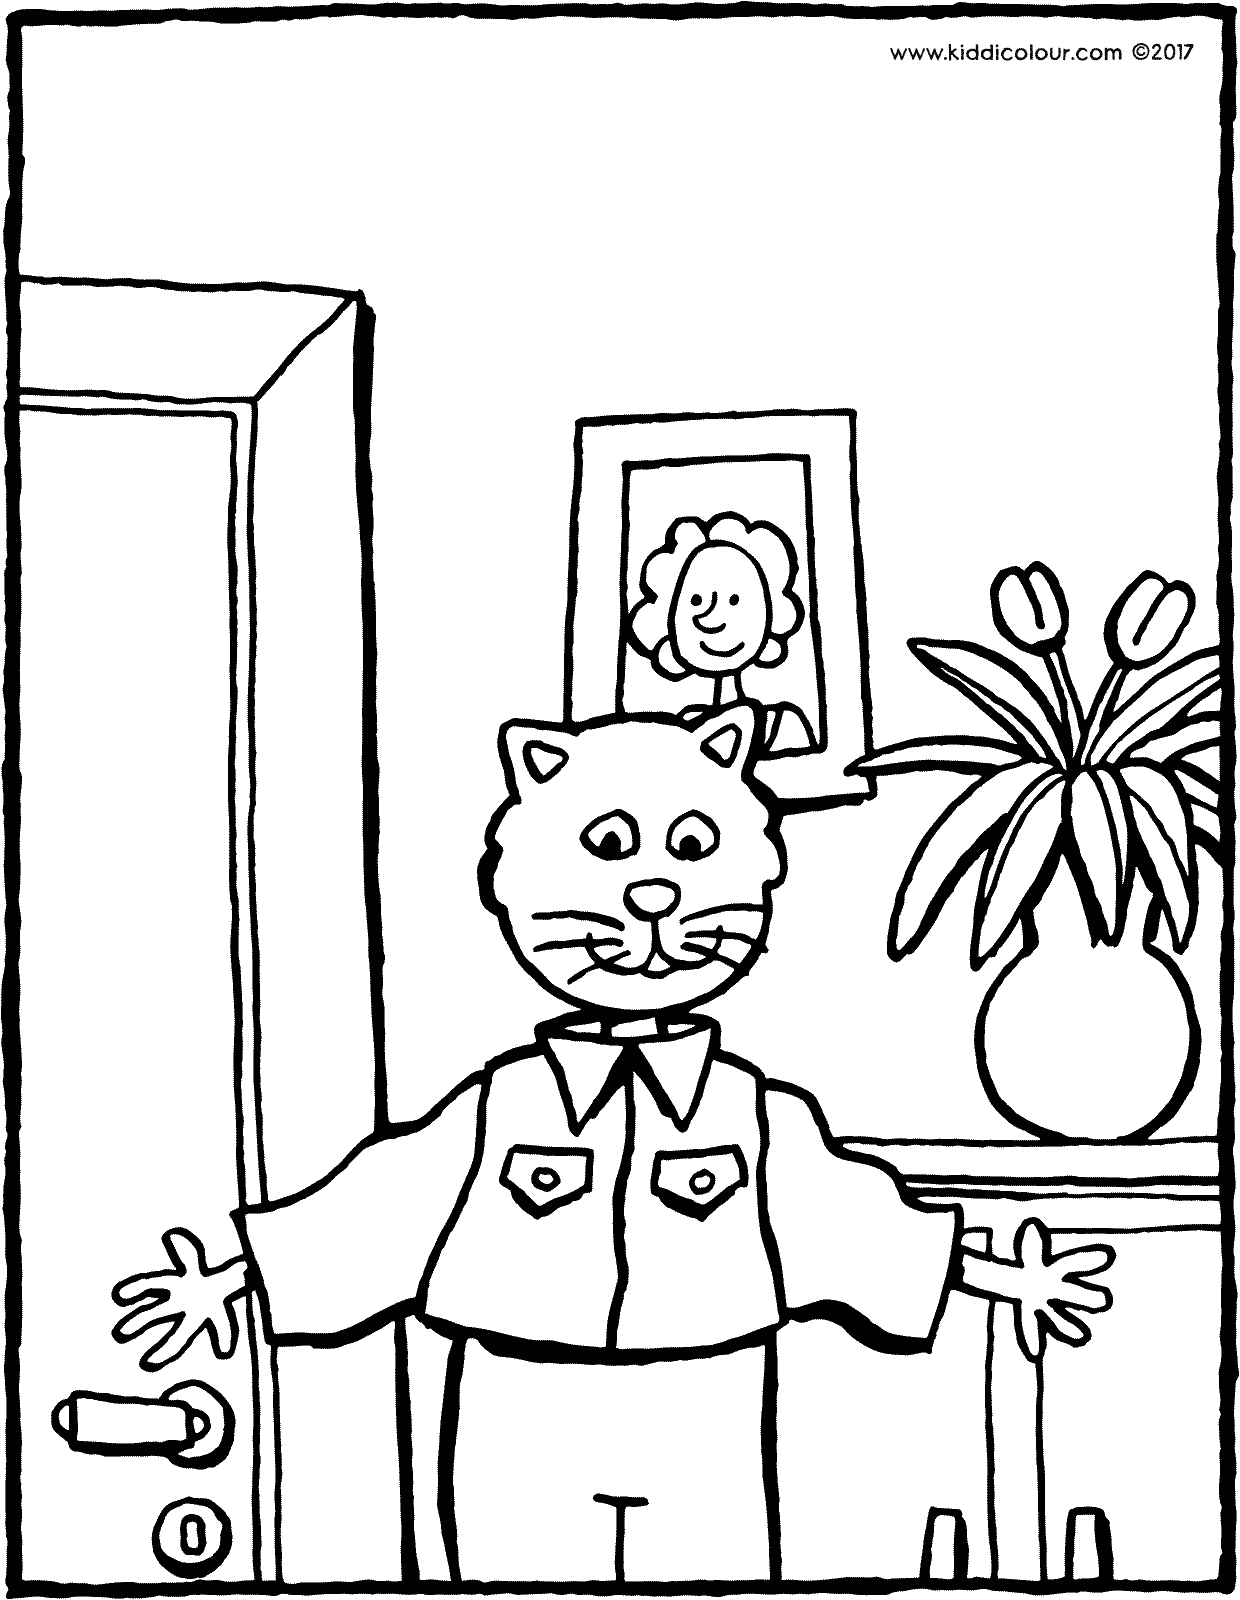 father's day celebration colouring page drawing picture 01V